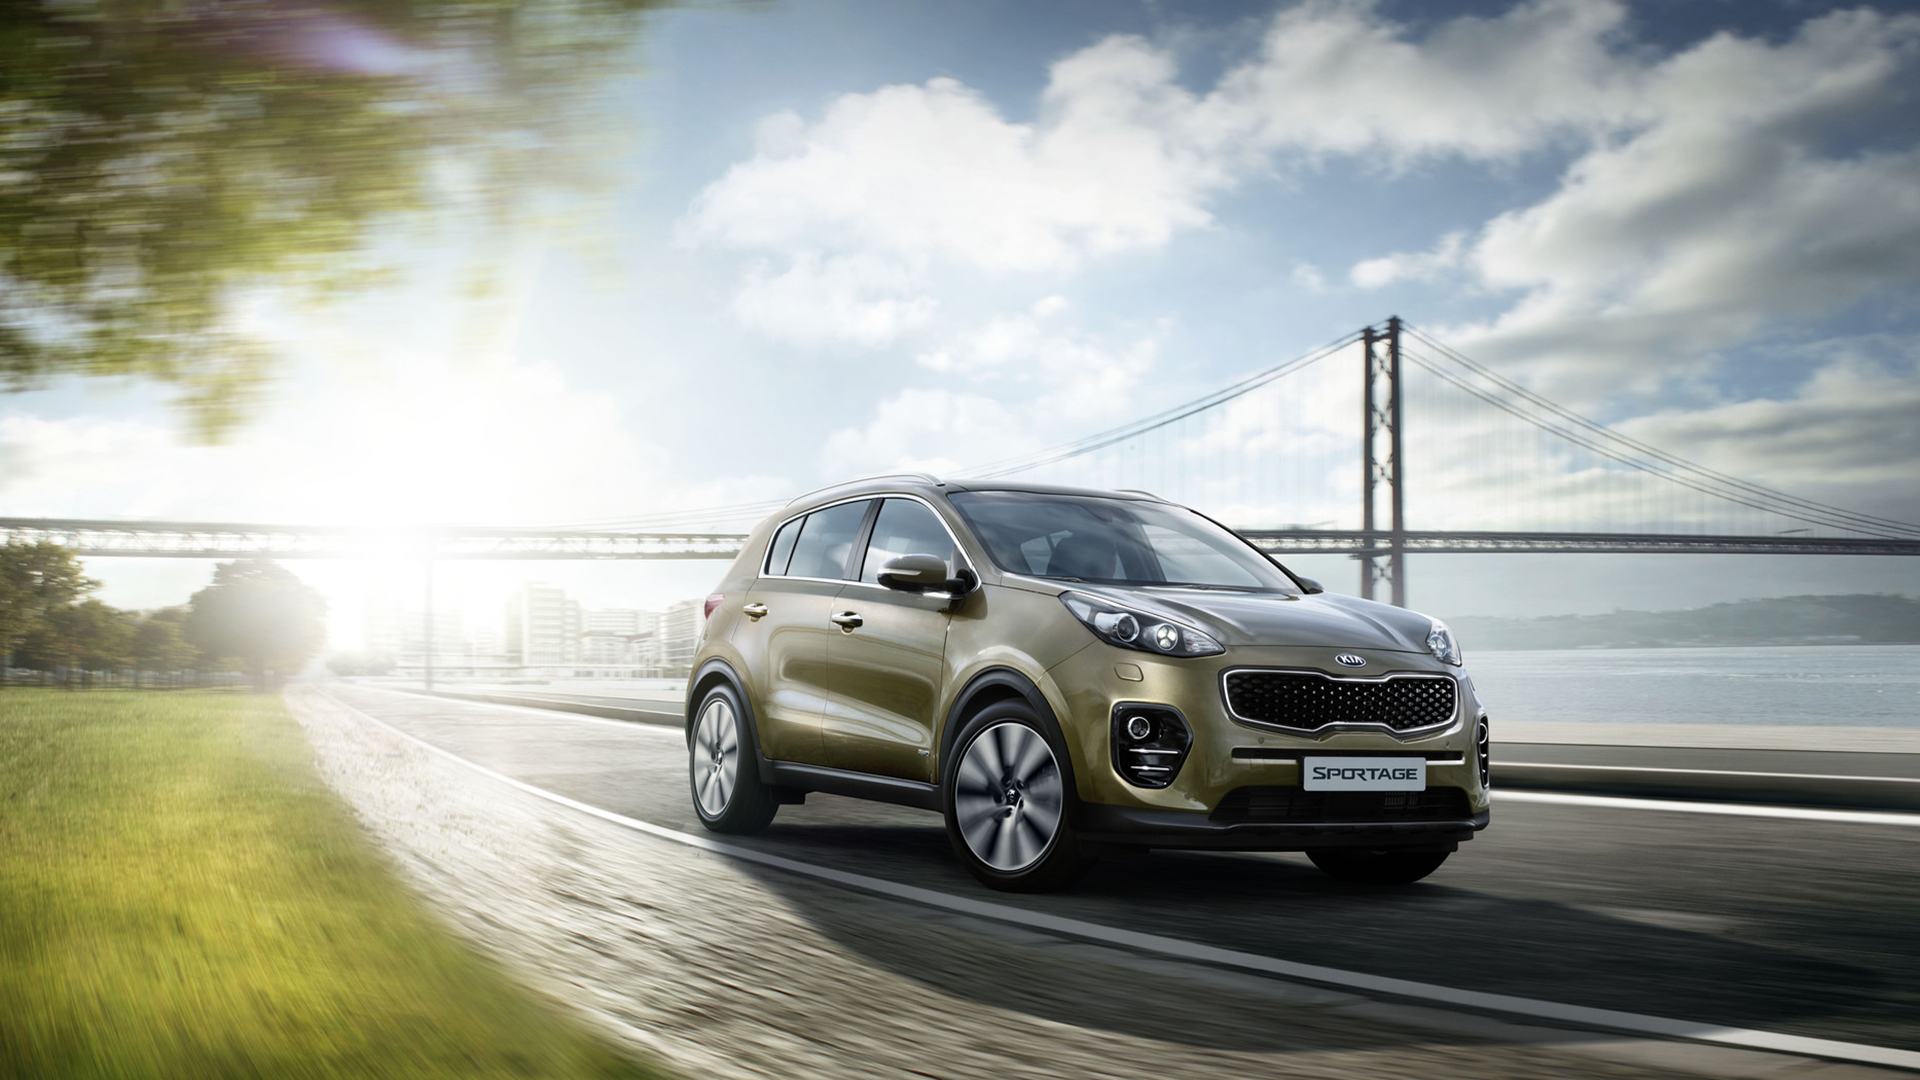 Kia_sportage_action-trim-1920×1080